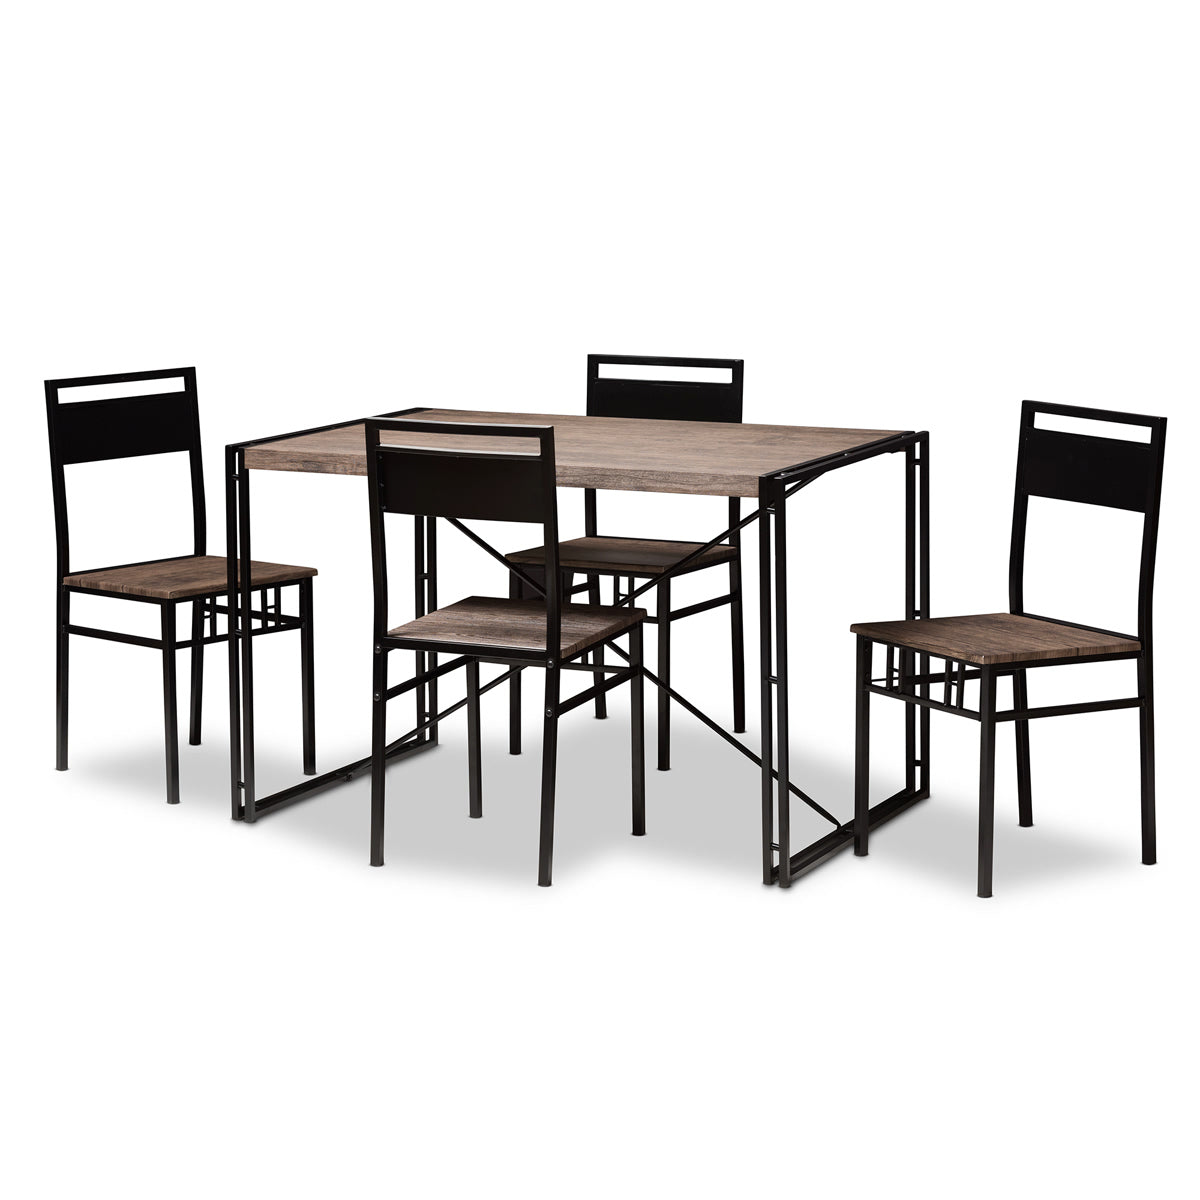 Baxton Studio Mamaine Rustic and Industrial Brown Wood Finished Matte Black Frame 5-Piece Dining Set Baxton Studio-0-Minimal And Modern - 1